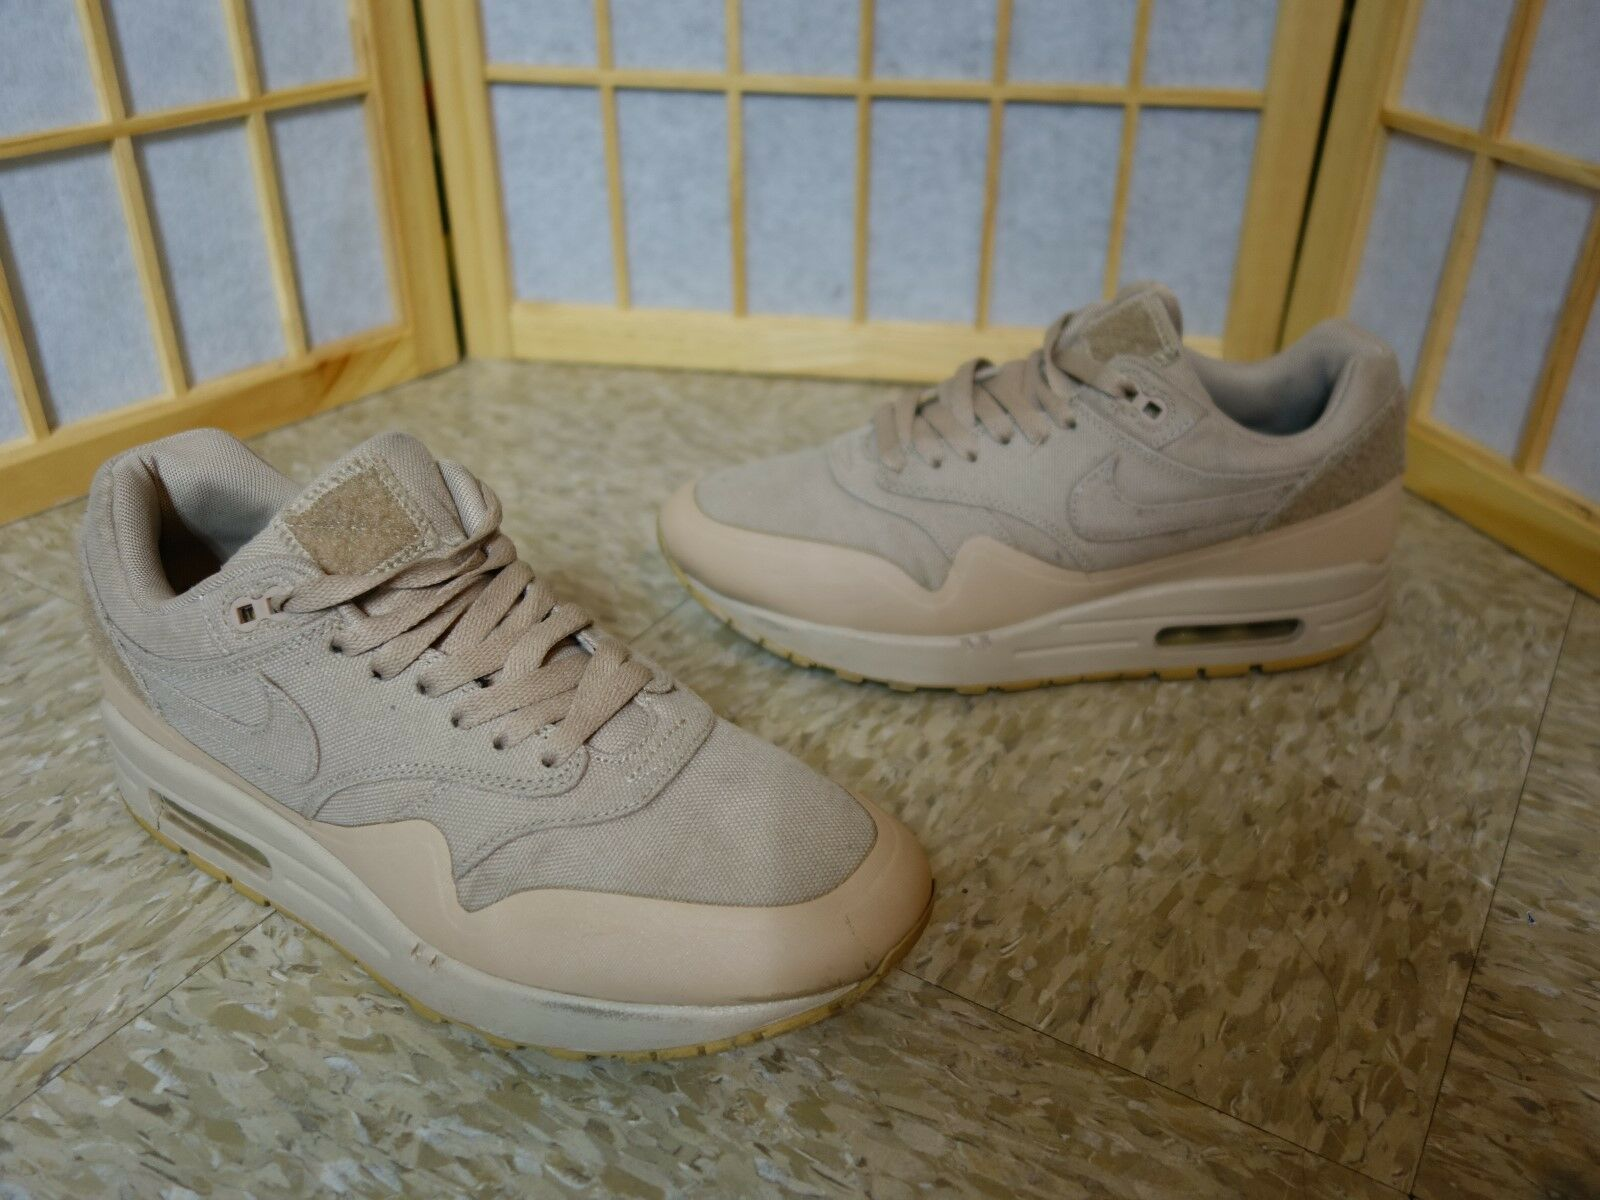 Uomota og raro nike air max nds nds nds / sp 1 cerotto sabbia beige qs raro vintage bello correre 10abce